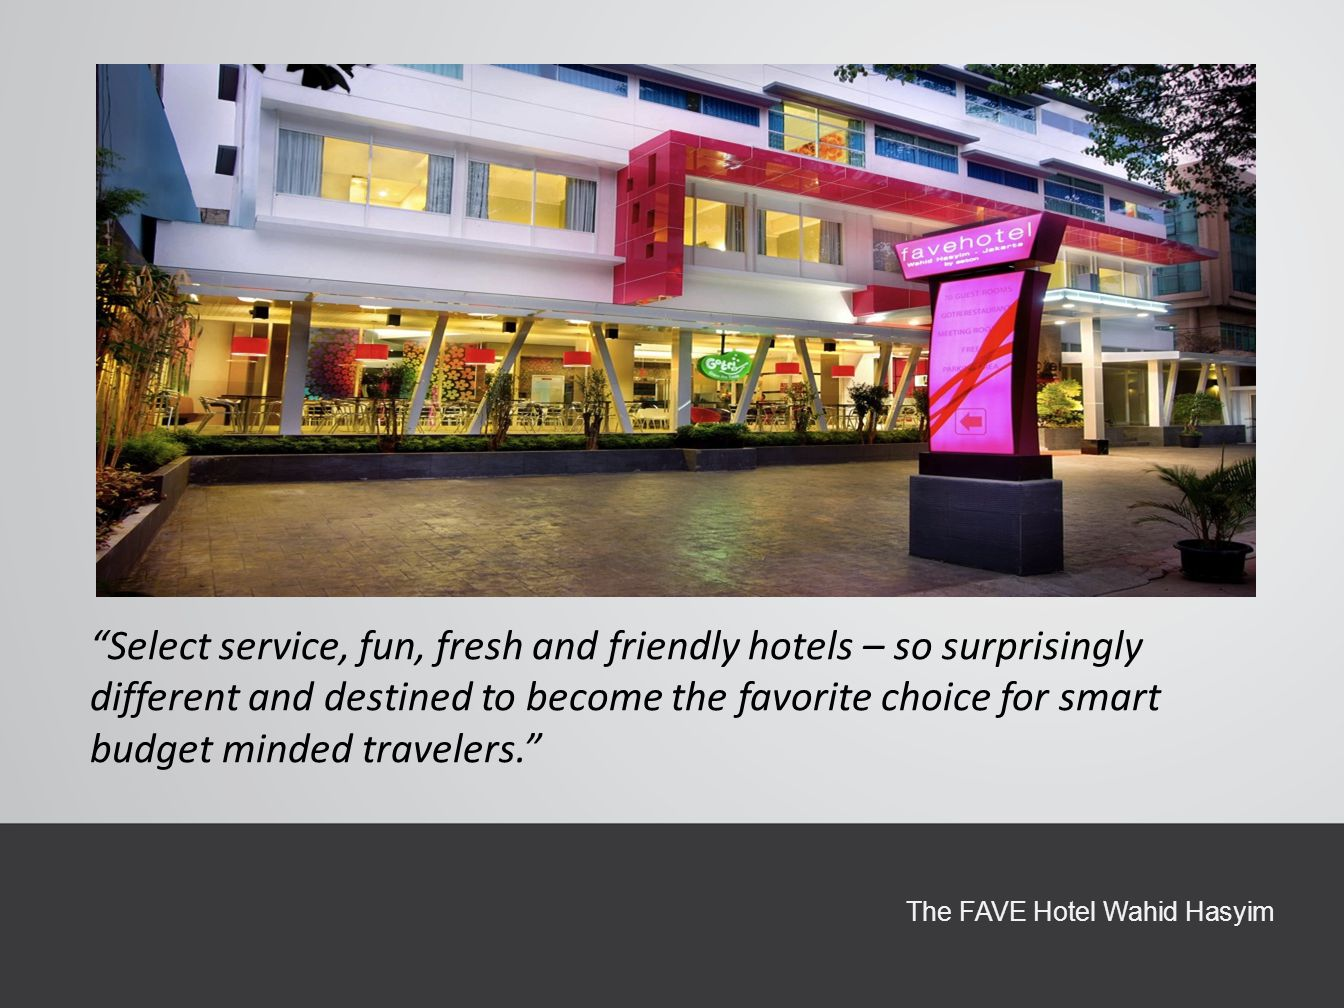 The FAVE Hotel Wahid Hasyim Select service, fun, fresh and friendly hotels – so surprisingly different and destined to become the favorite choice for smart budget minded travelers.